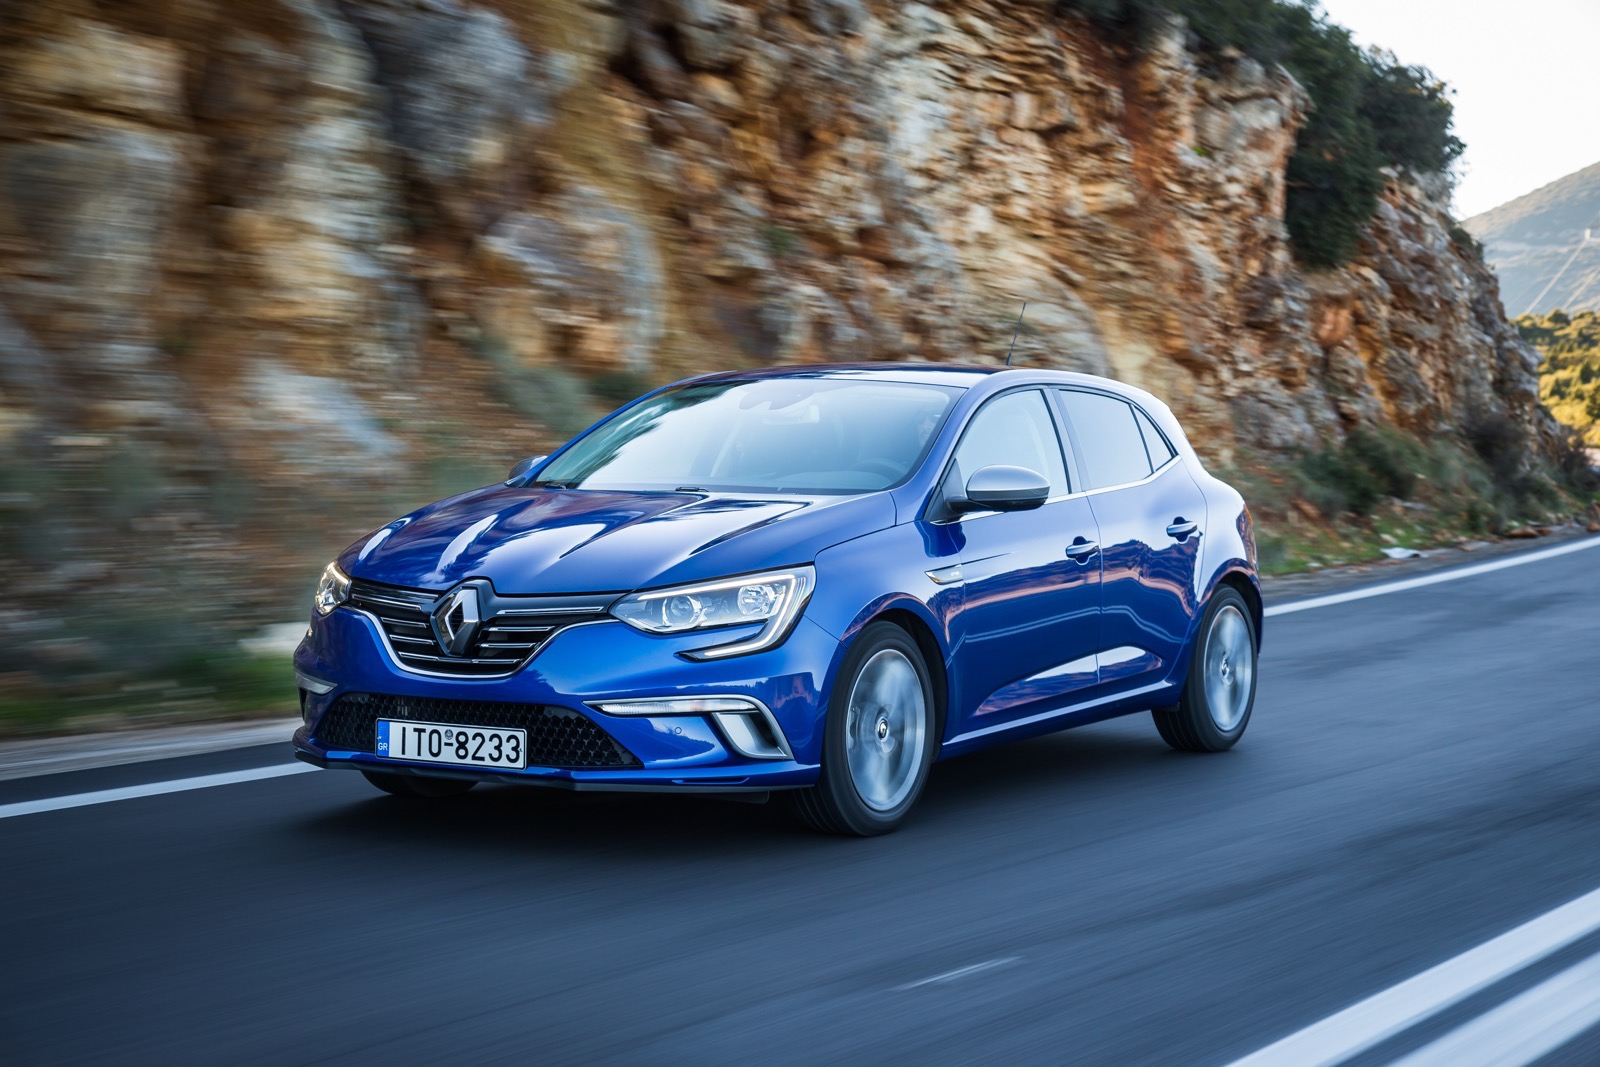 First_Drive_Renault_Megane_78